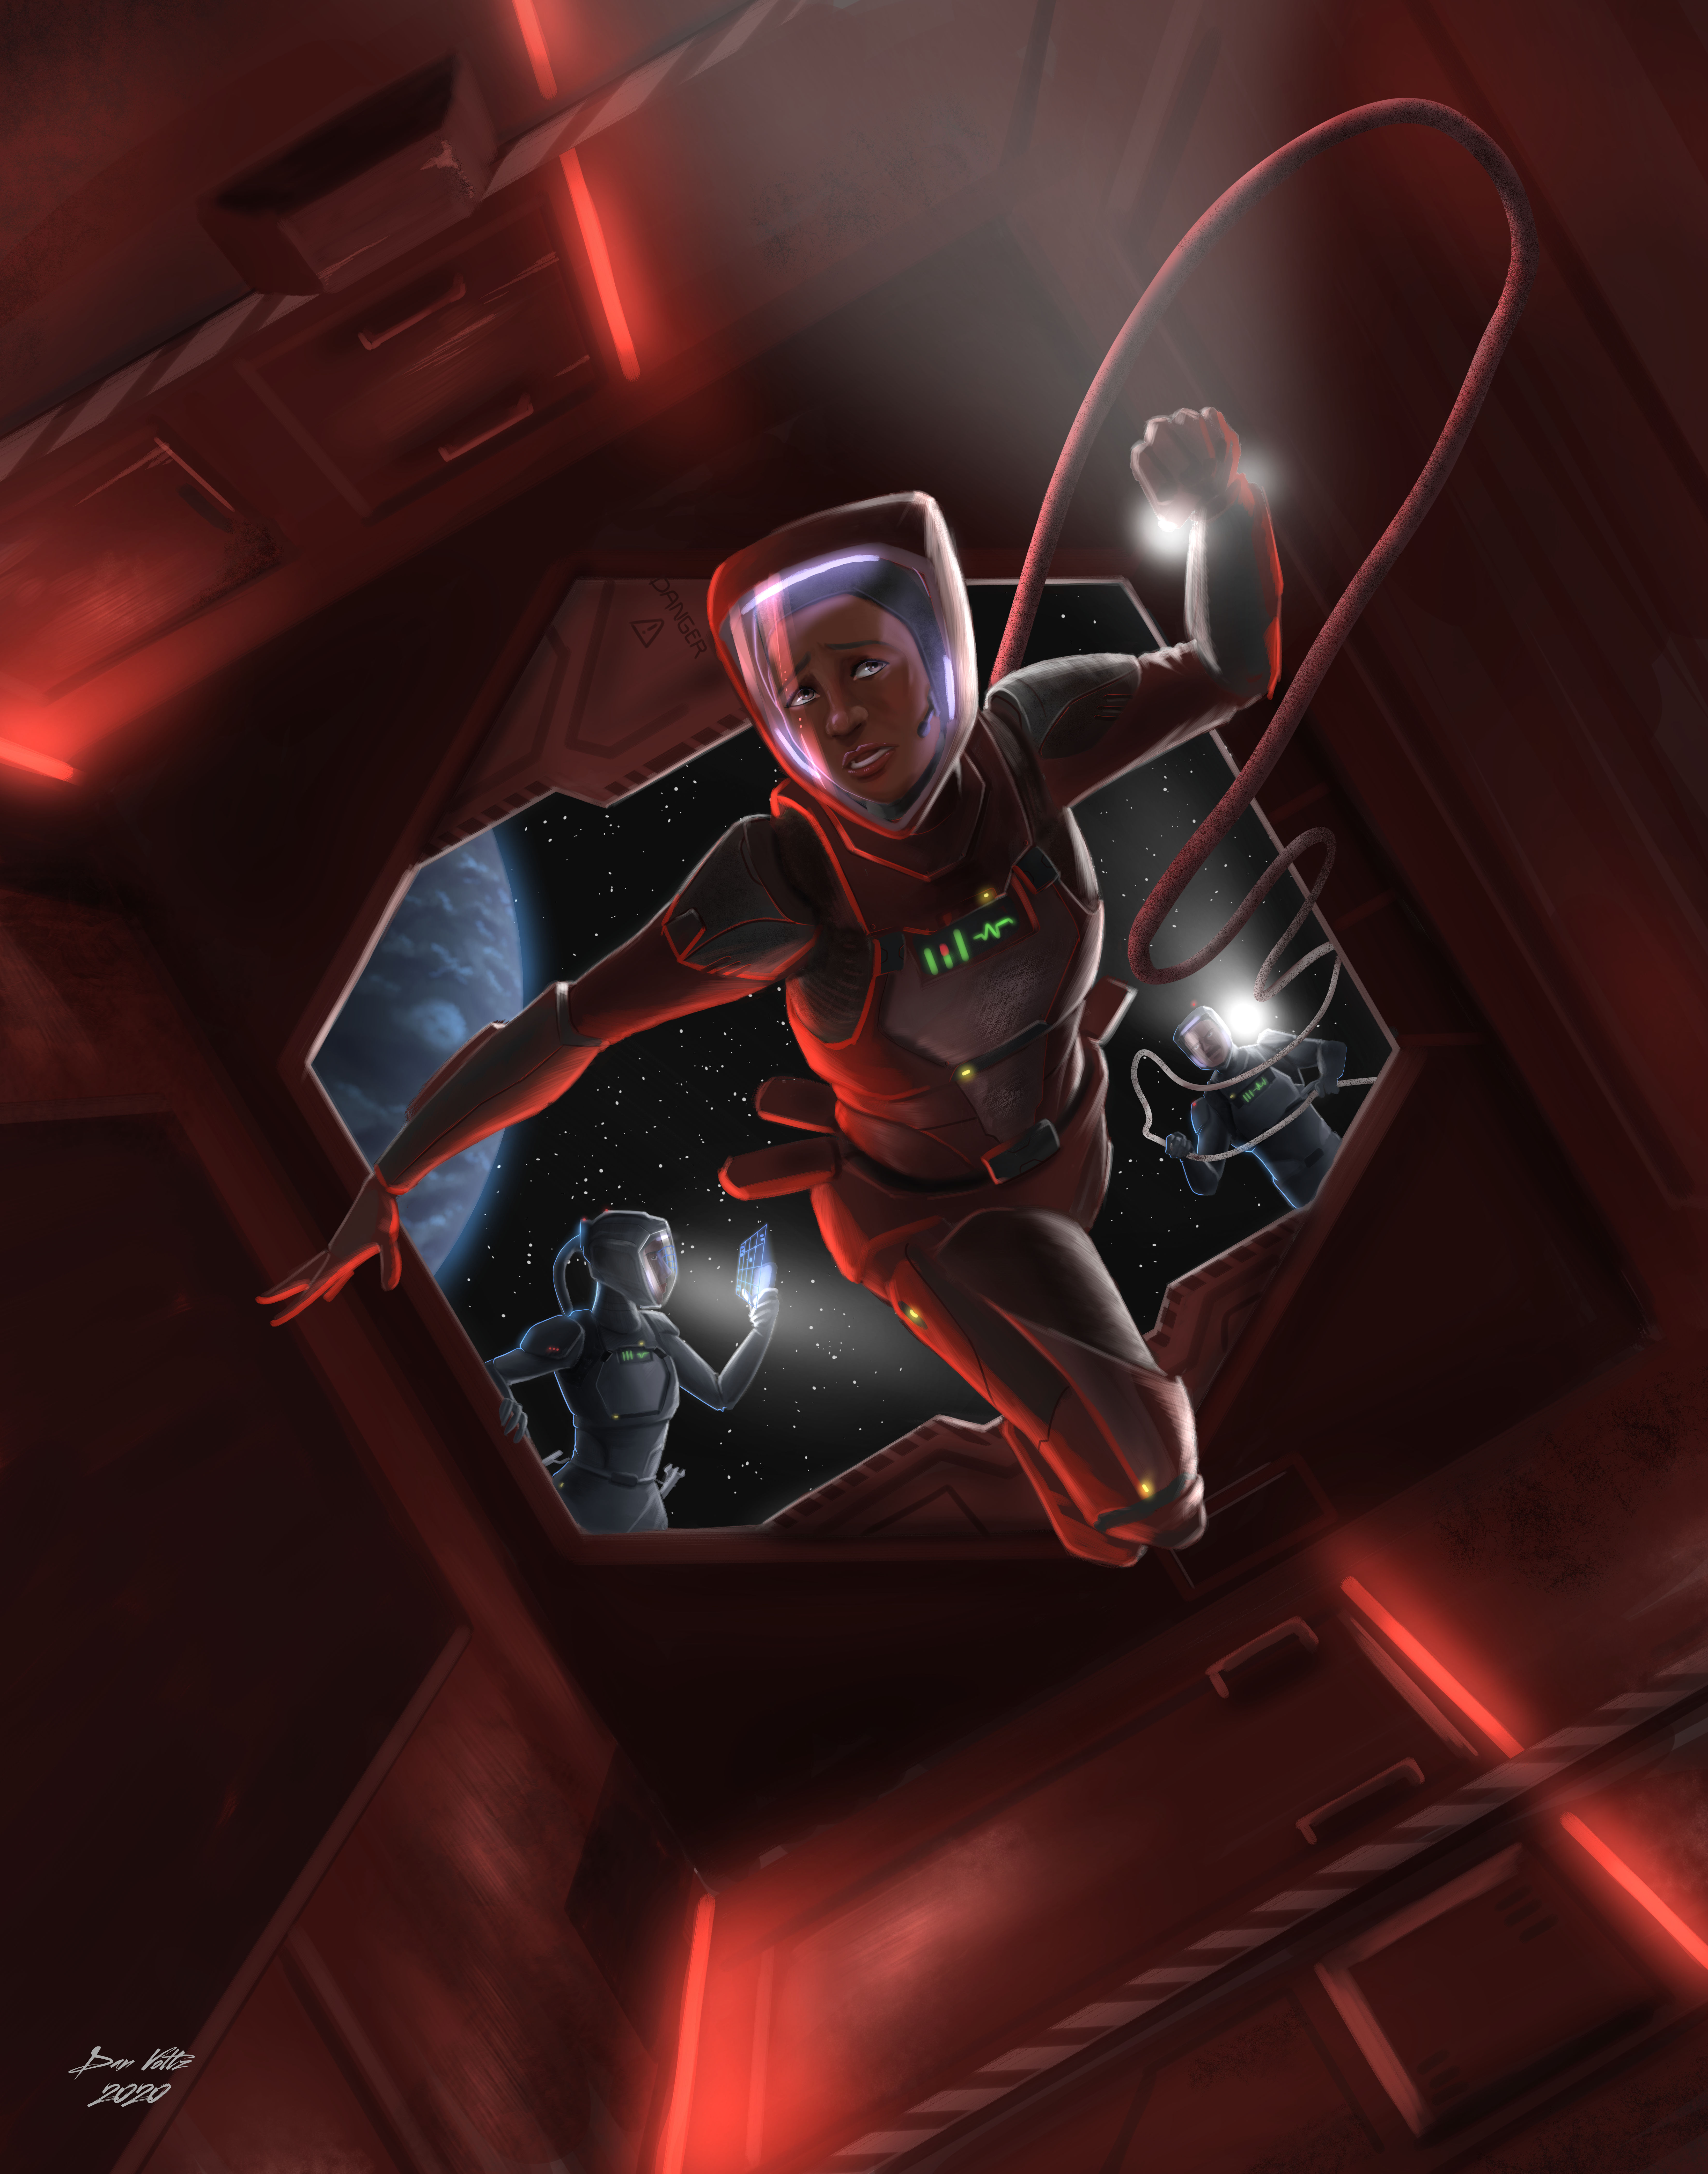 A science fiction painting showing an astronaut entering an ominous airlock, illuminated by flashlights.